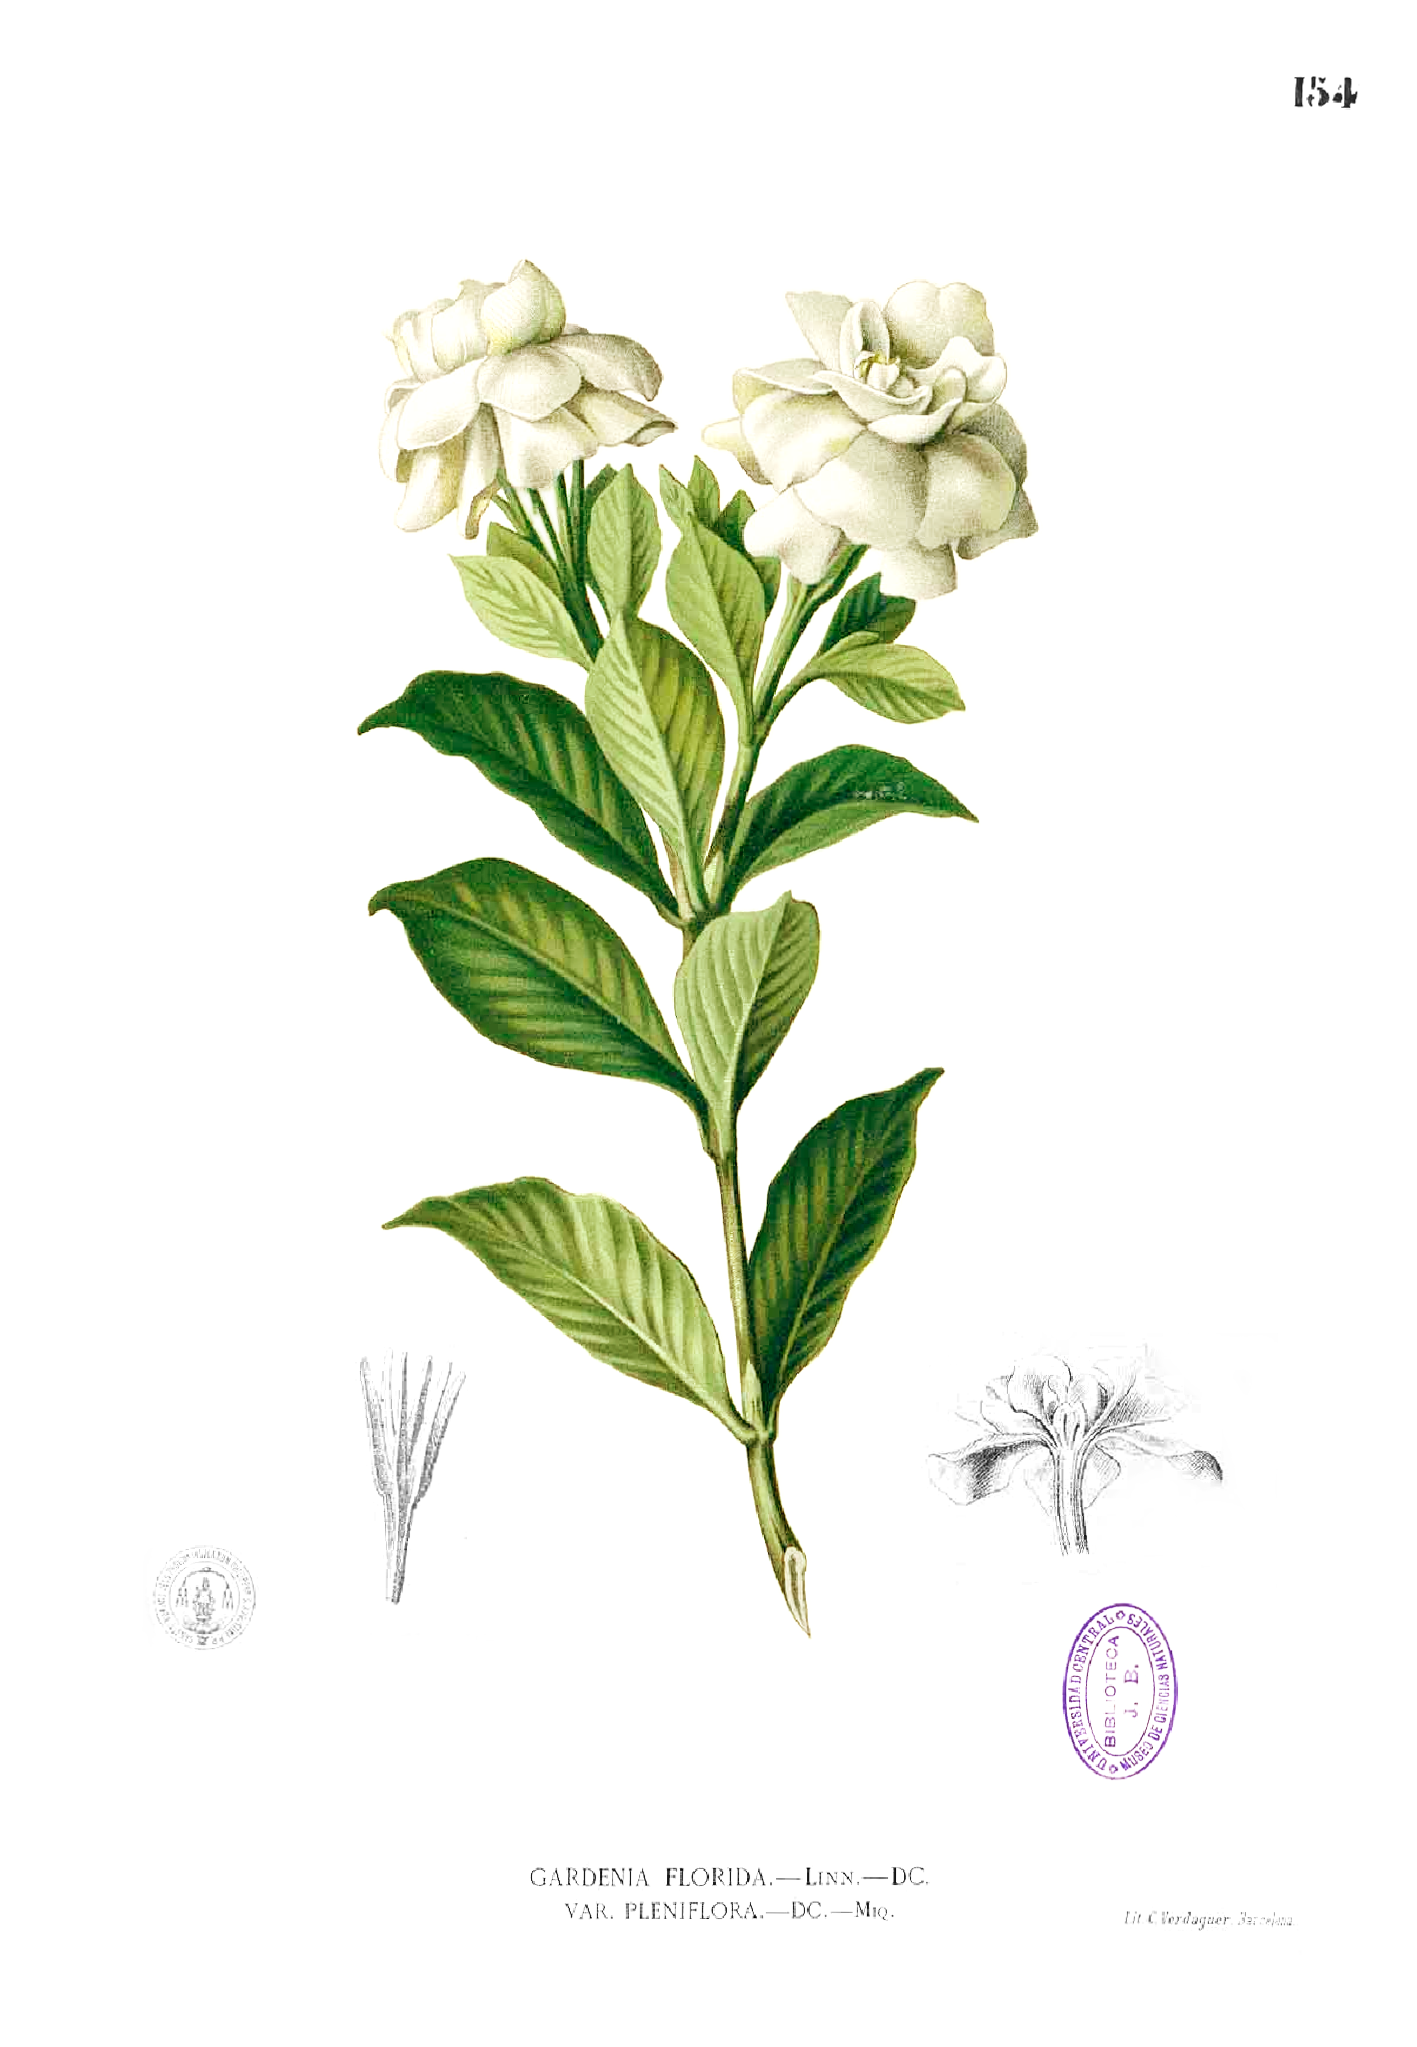 Http Upload Wikimedia Org Wikipedia Commons 4 41 Gardenia Jasminoides Blanco1 154 Png Gardenia Gardenia Plant Flower Drawing